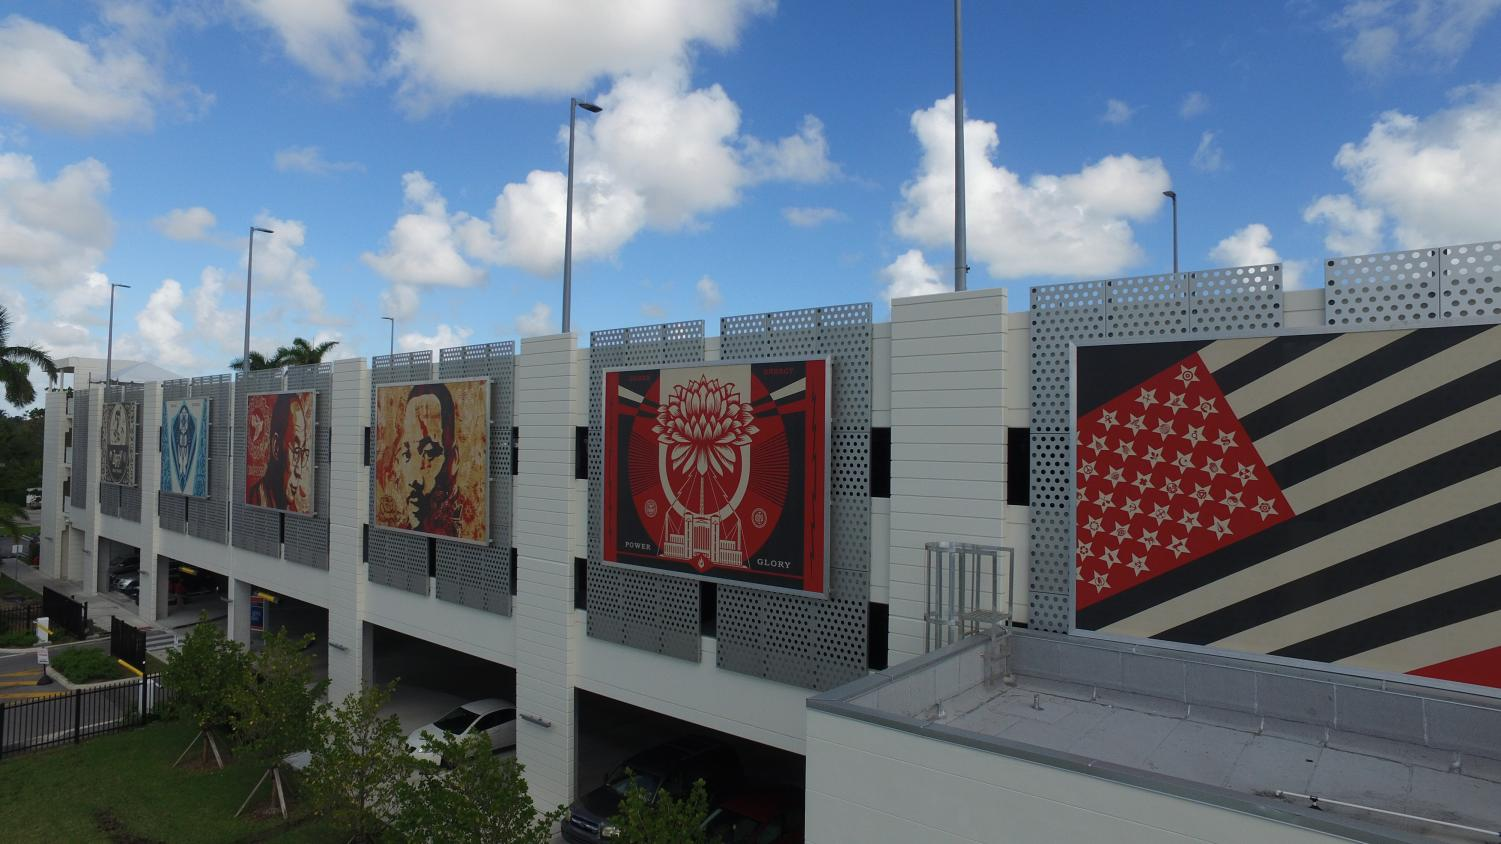 Shepard Fairey Adorns Garage